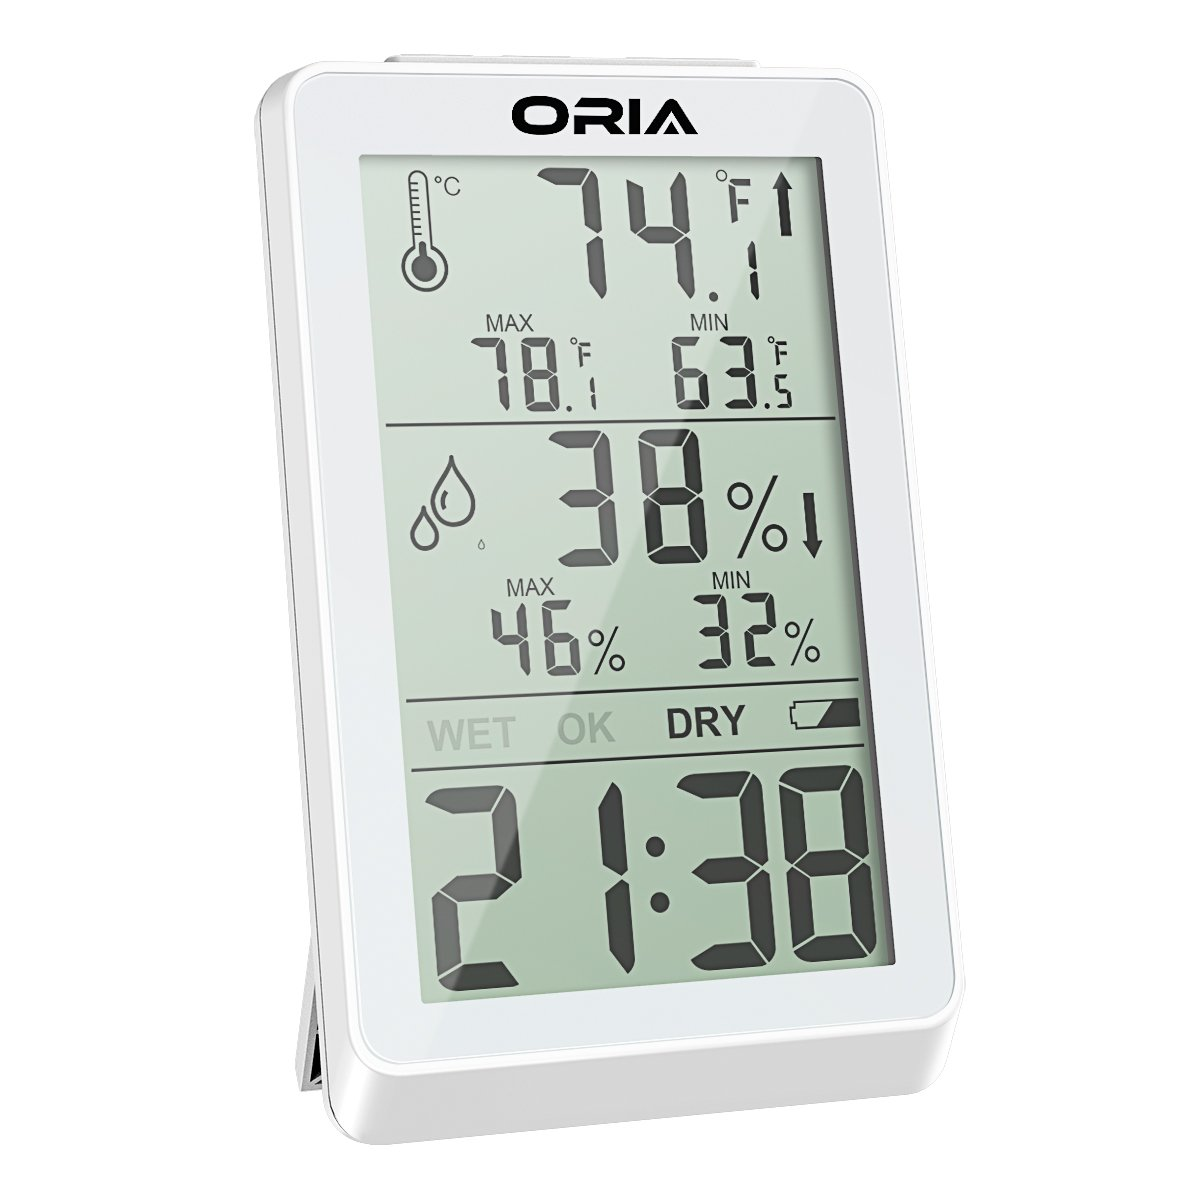 ORIA Digital Hygrometer Thermometer, Indoor Humidity Monitor, Temperature Humidity Meter, Large LCD Screen Gauge Indicator, Min and Max Records, Time Display for Home, Office, Bedroom, Kitchen (White)